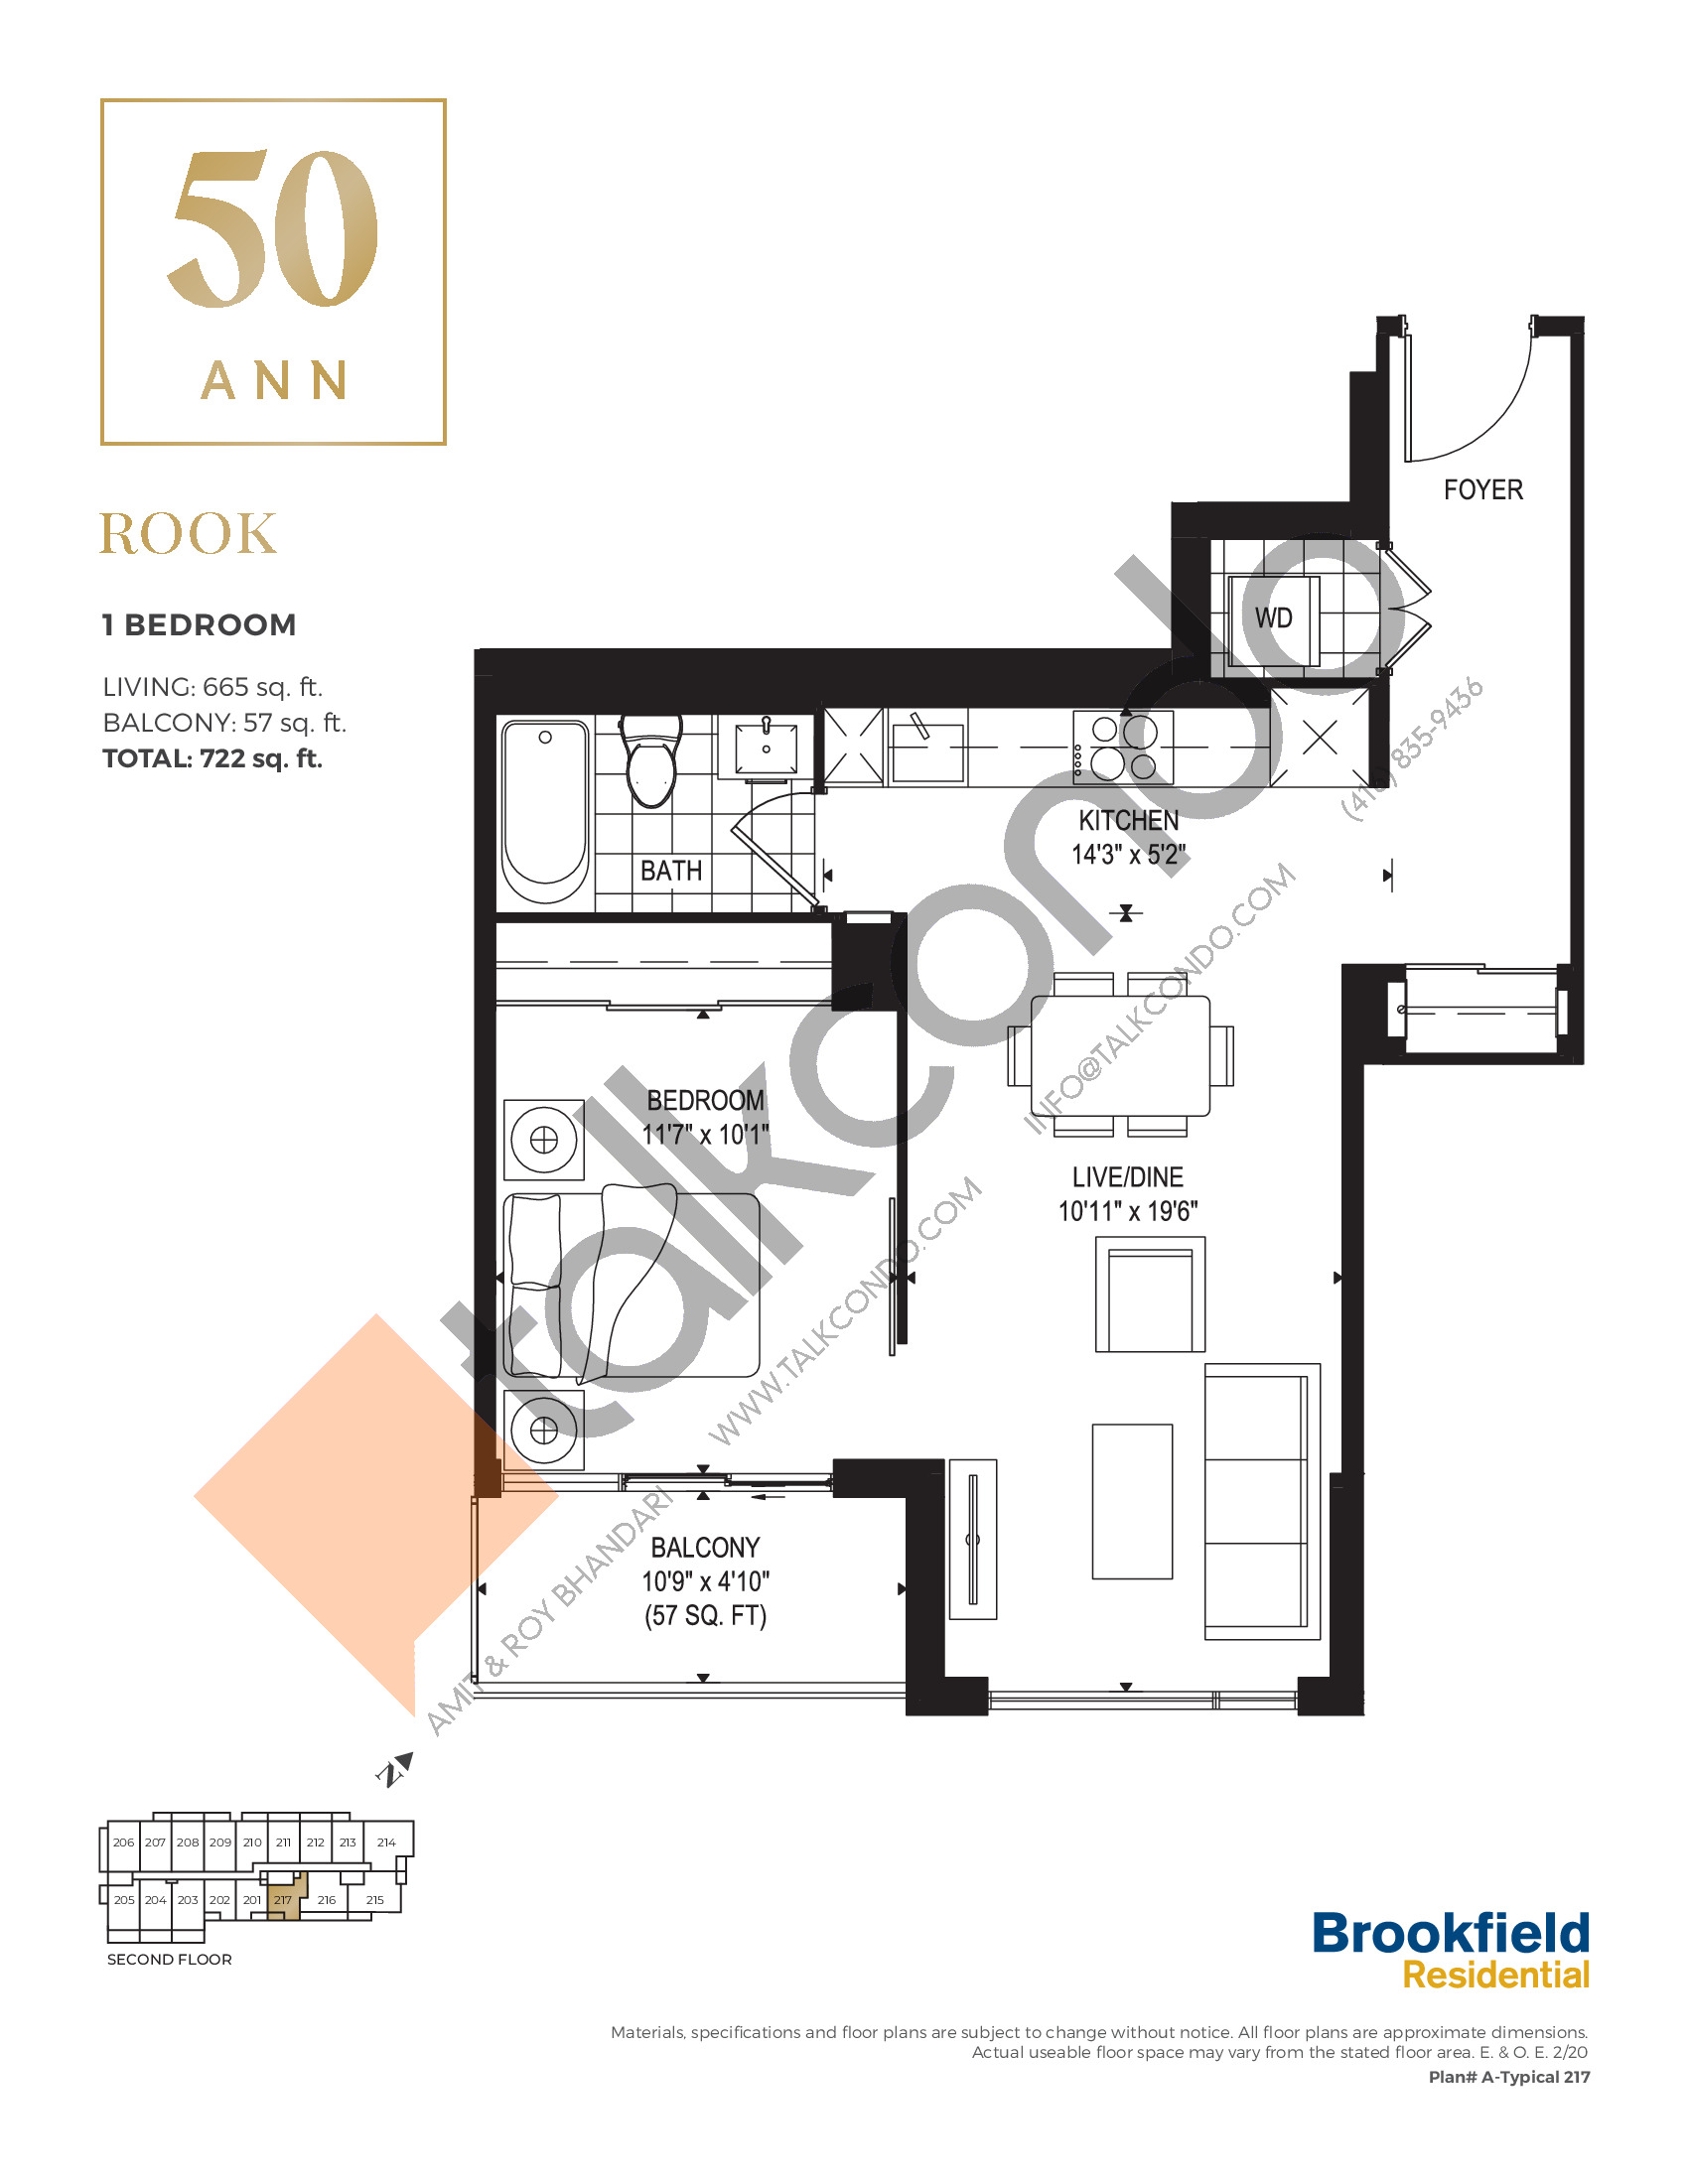 Rook Floor Plan at 50 Ann Condos - 665 sq.ft